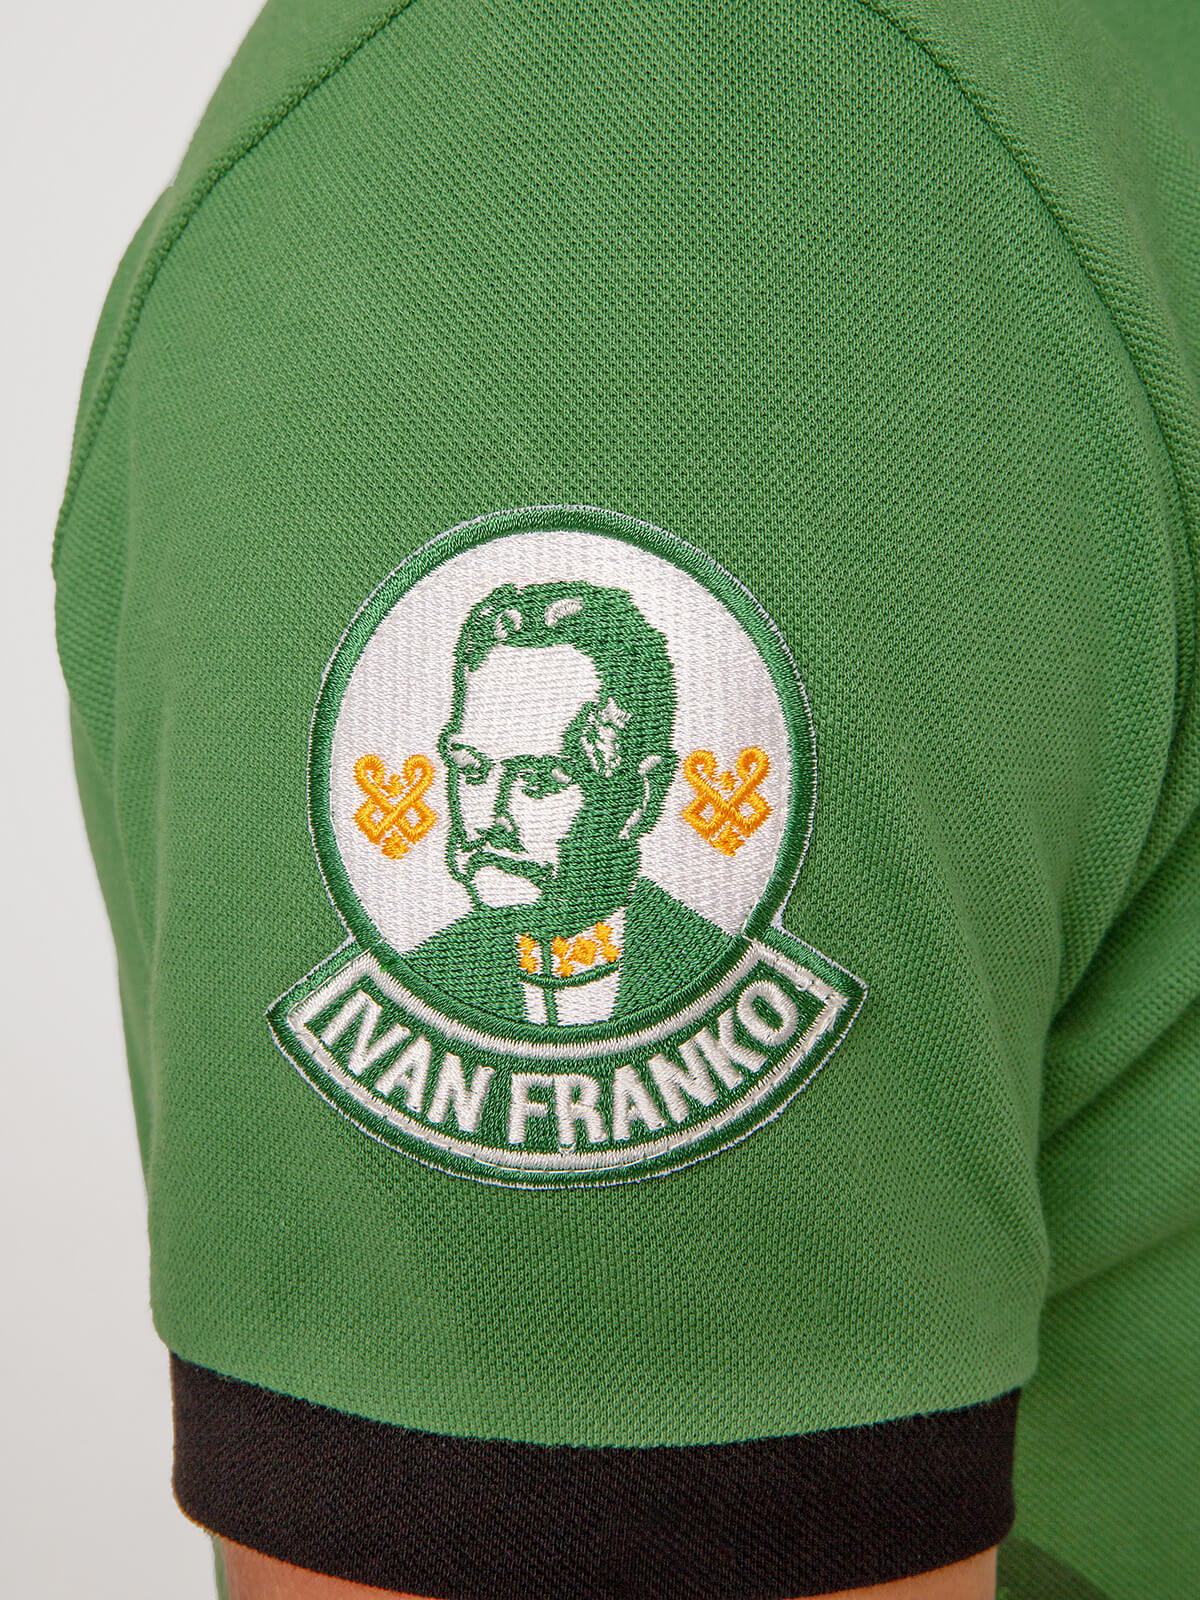 Men's Polo Shirt Ivan Franko. Color green.  Size worn by the model: М.